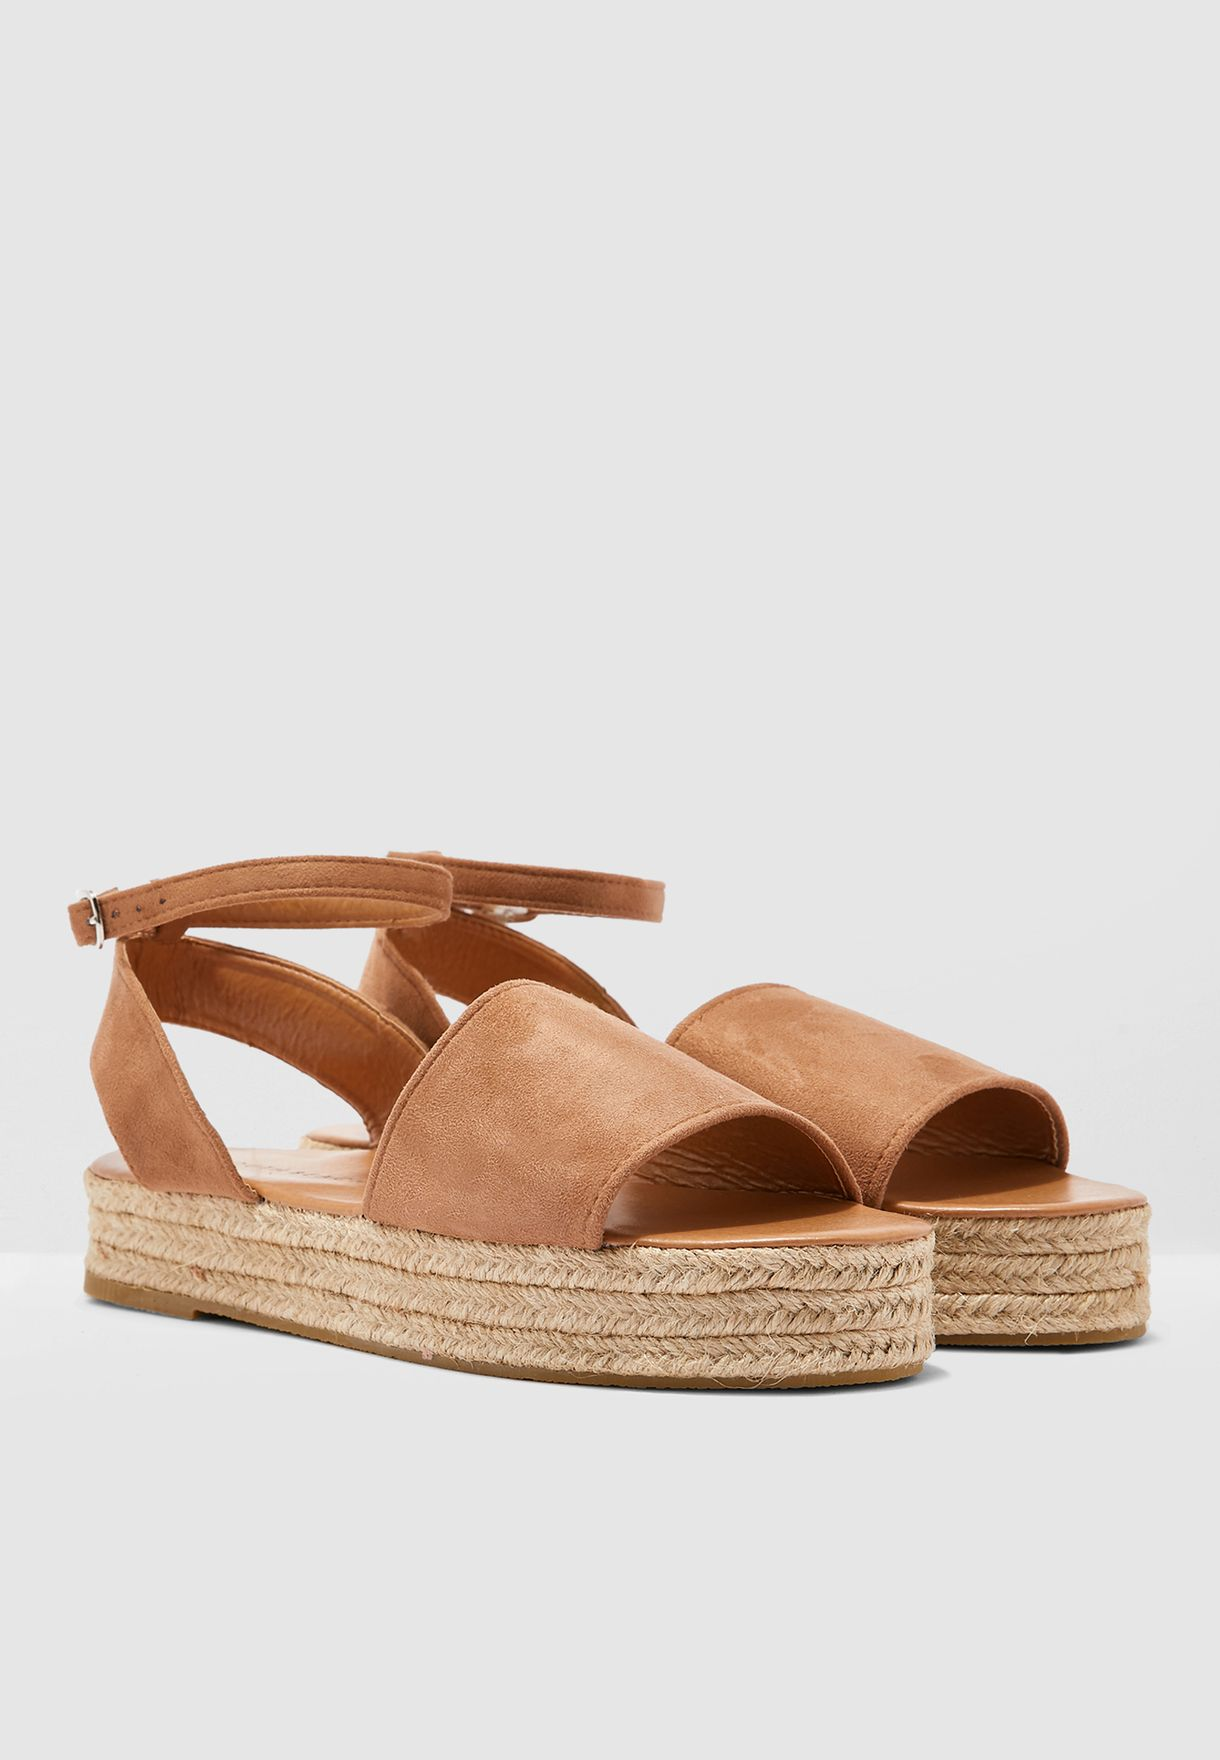 Ankle Strap Wedge - Tan